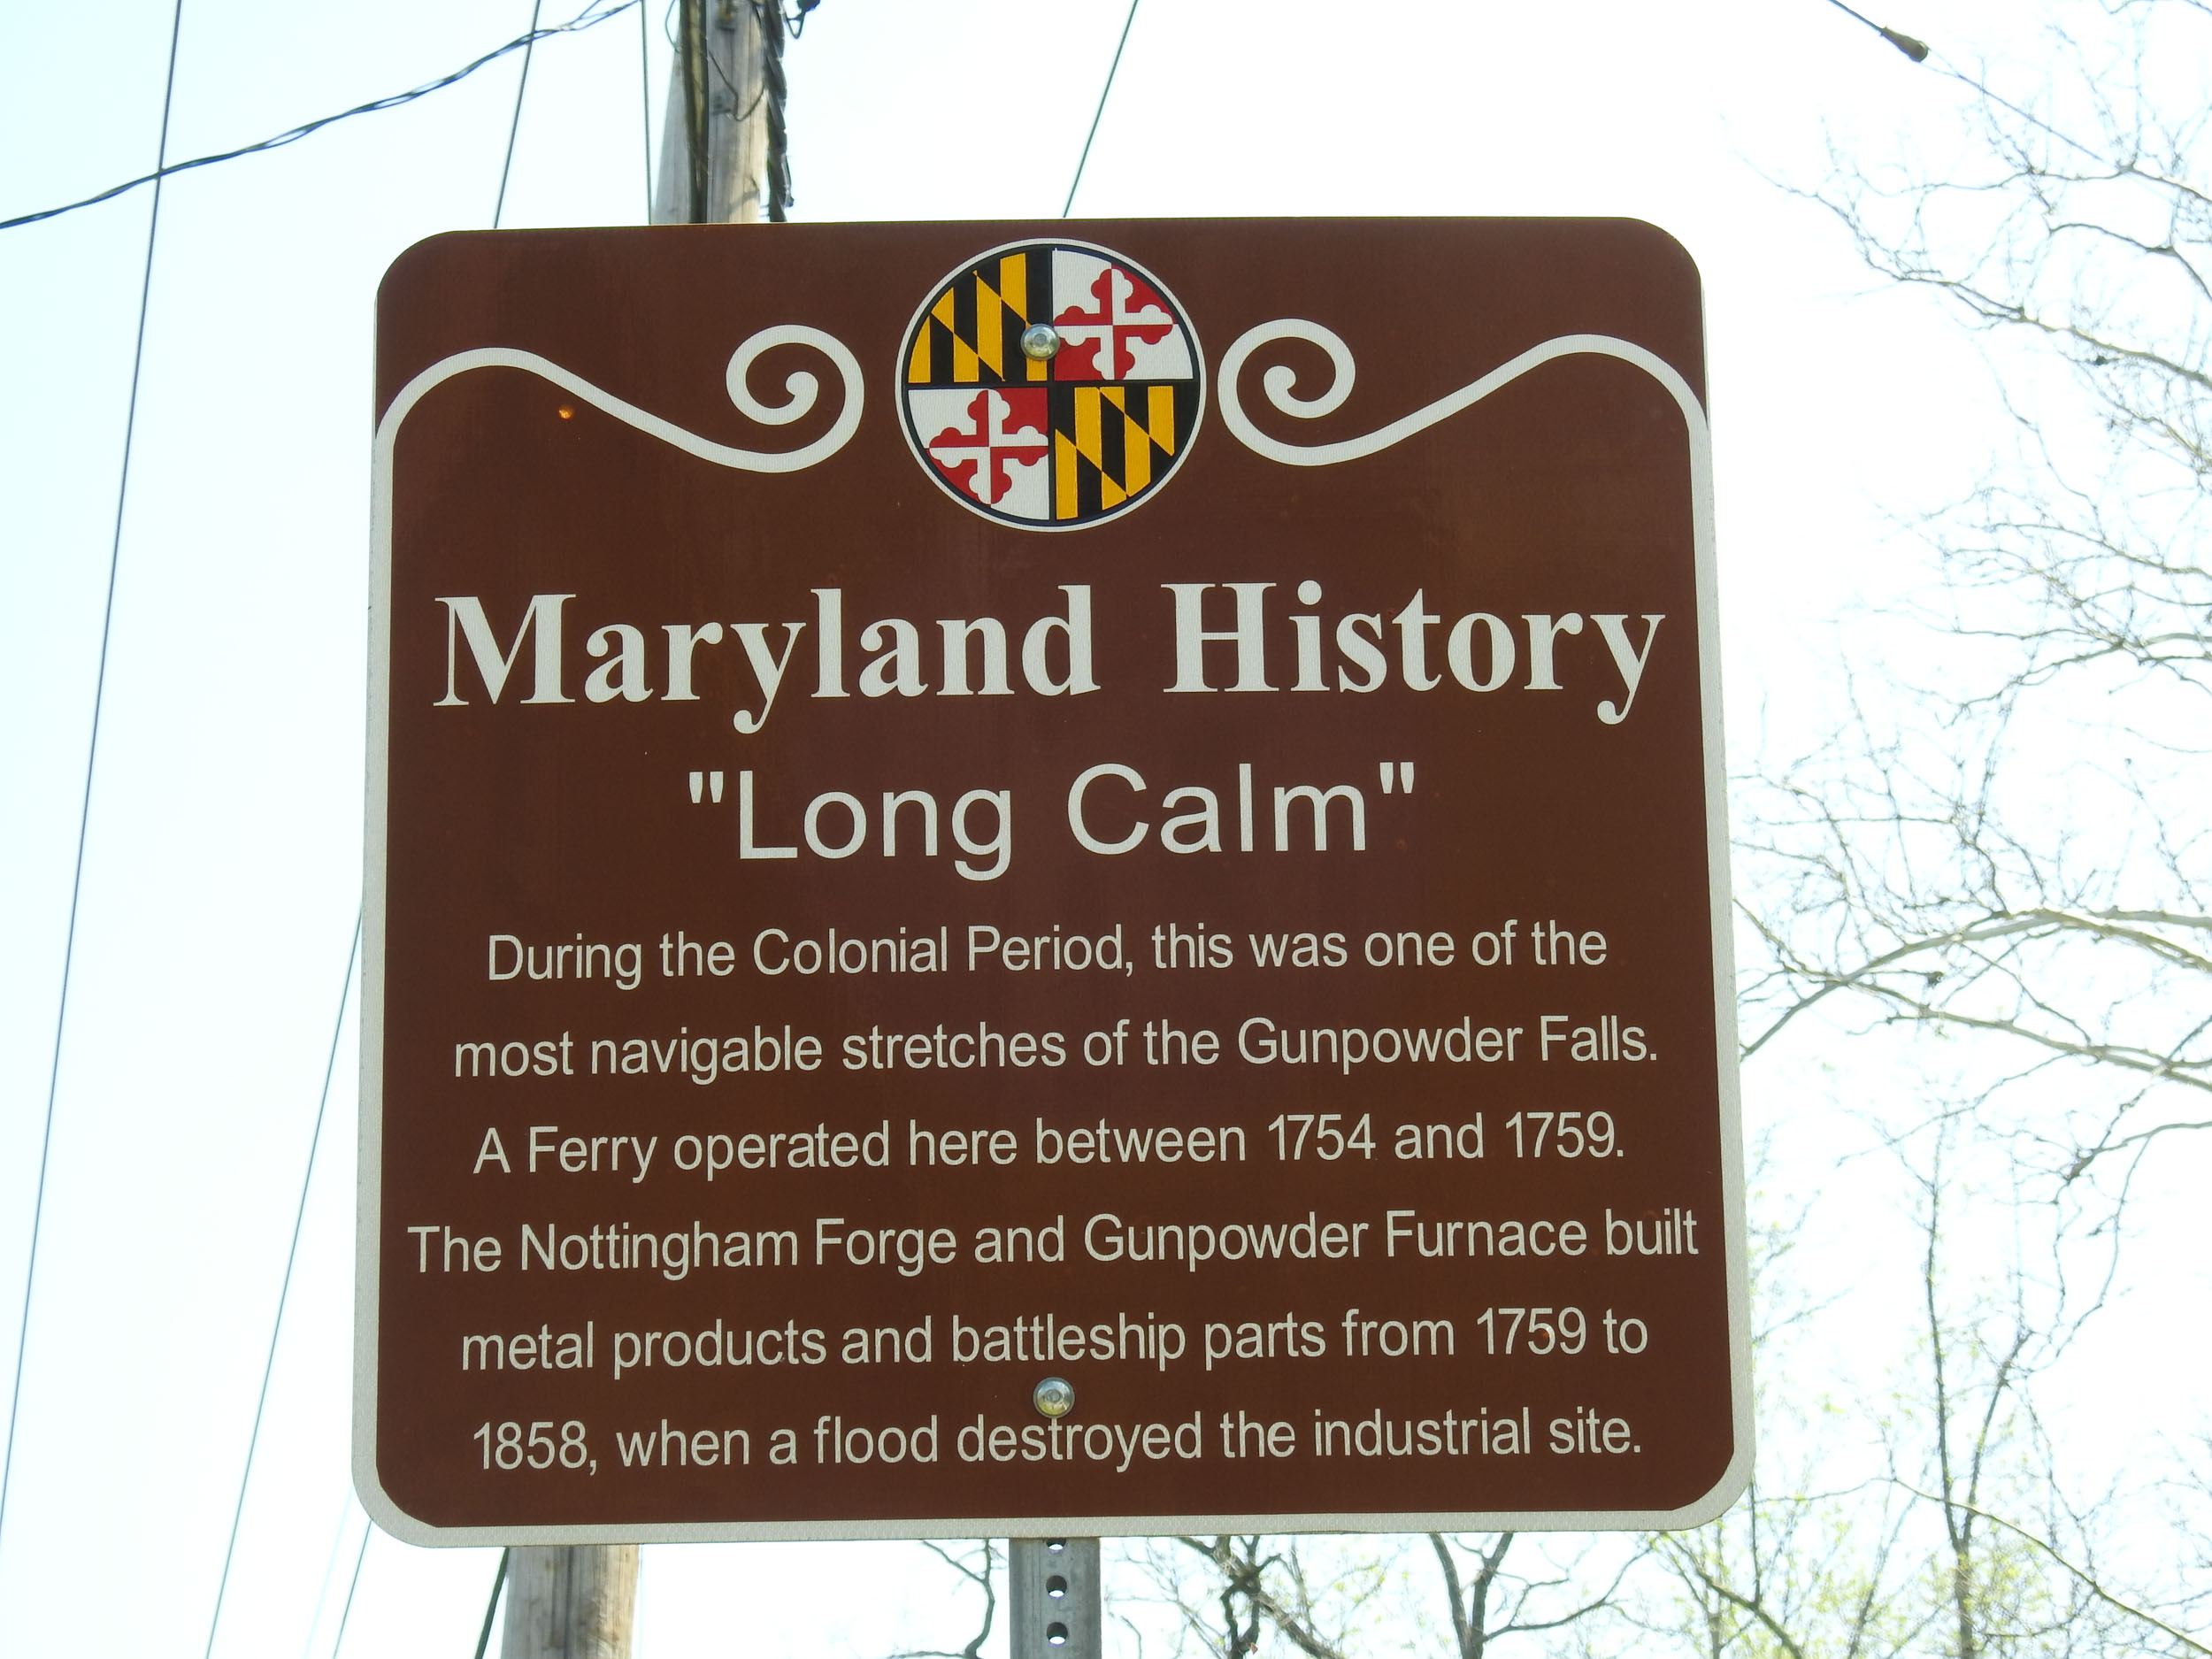 Long Calm historical marker on Philadelphia Road near Forge Road, White Marsh, Maryland.